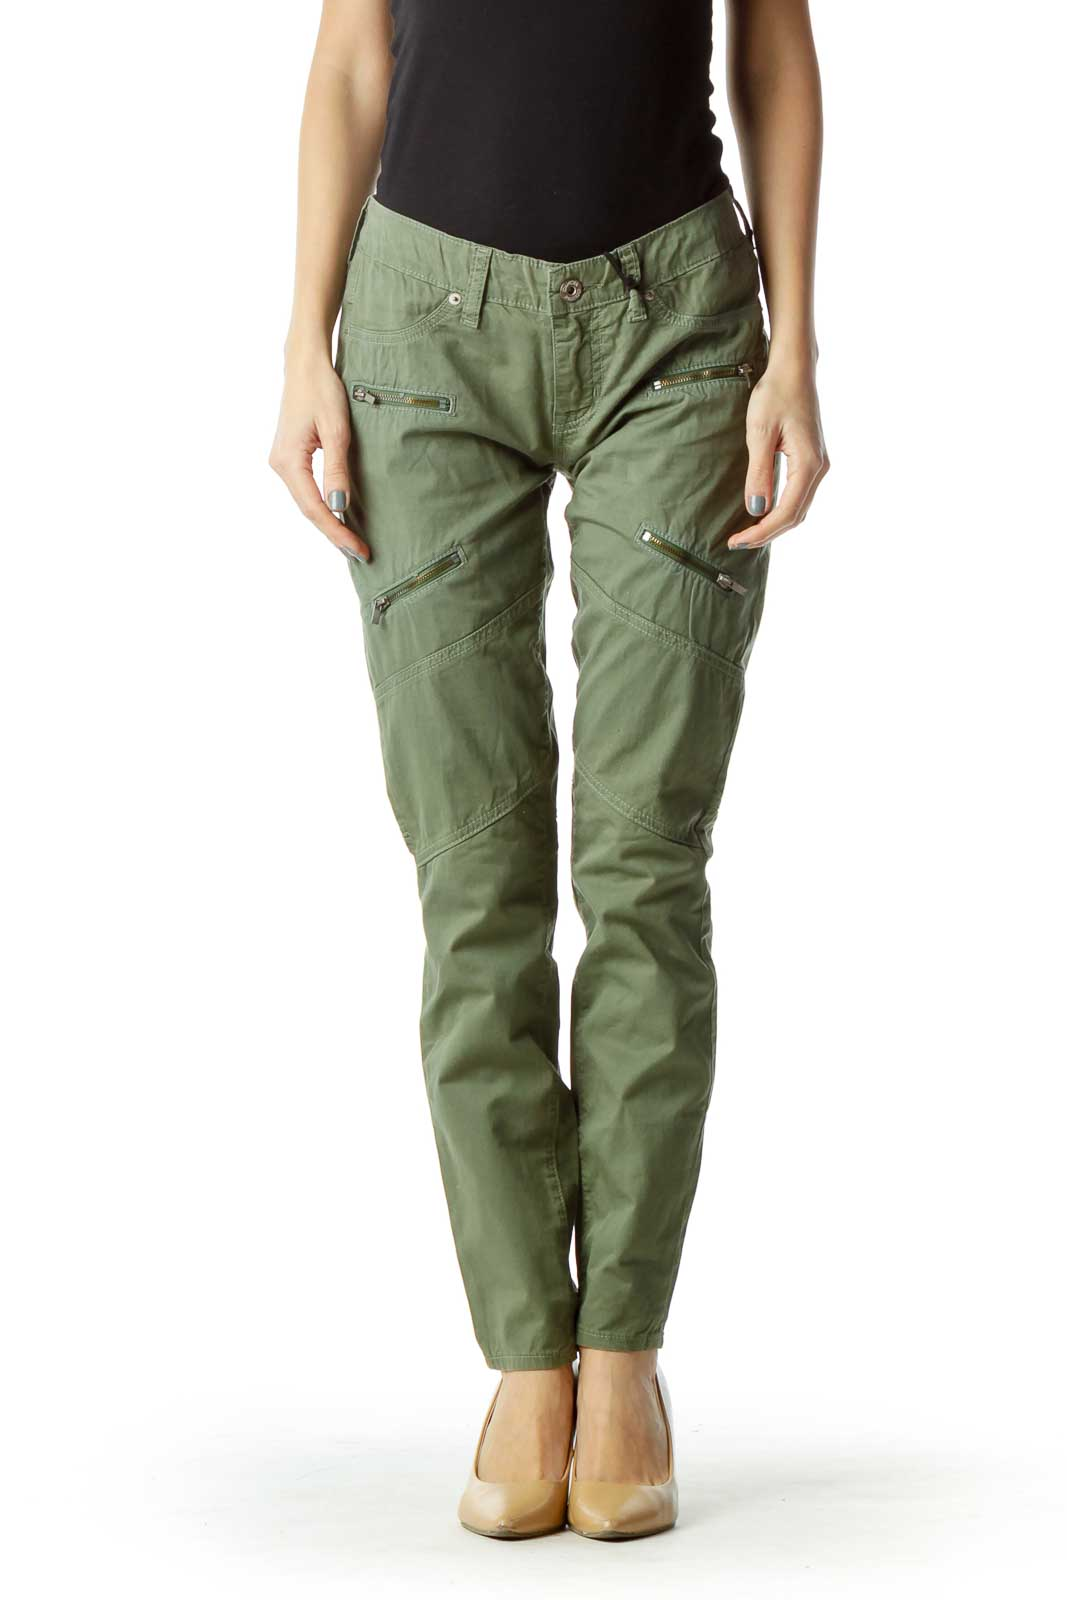 Green Skinny Cargo Pant with Zipper Detail Front